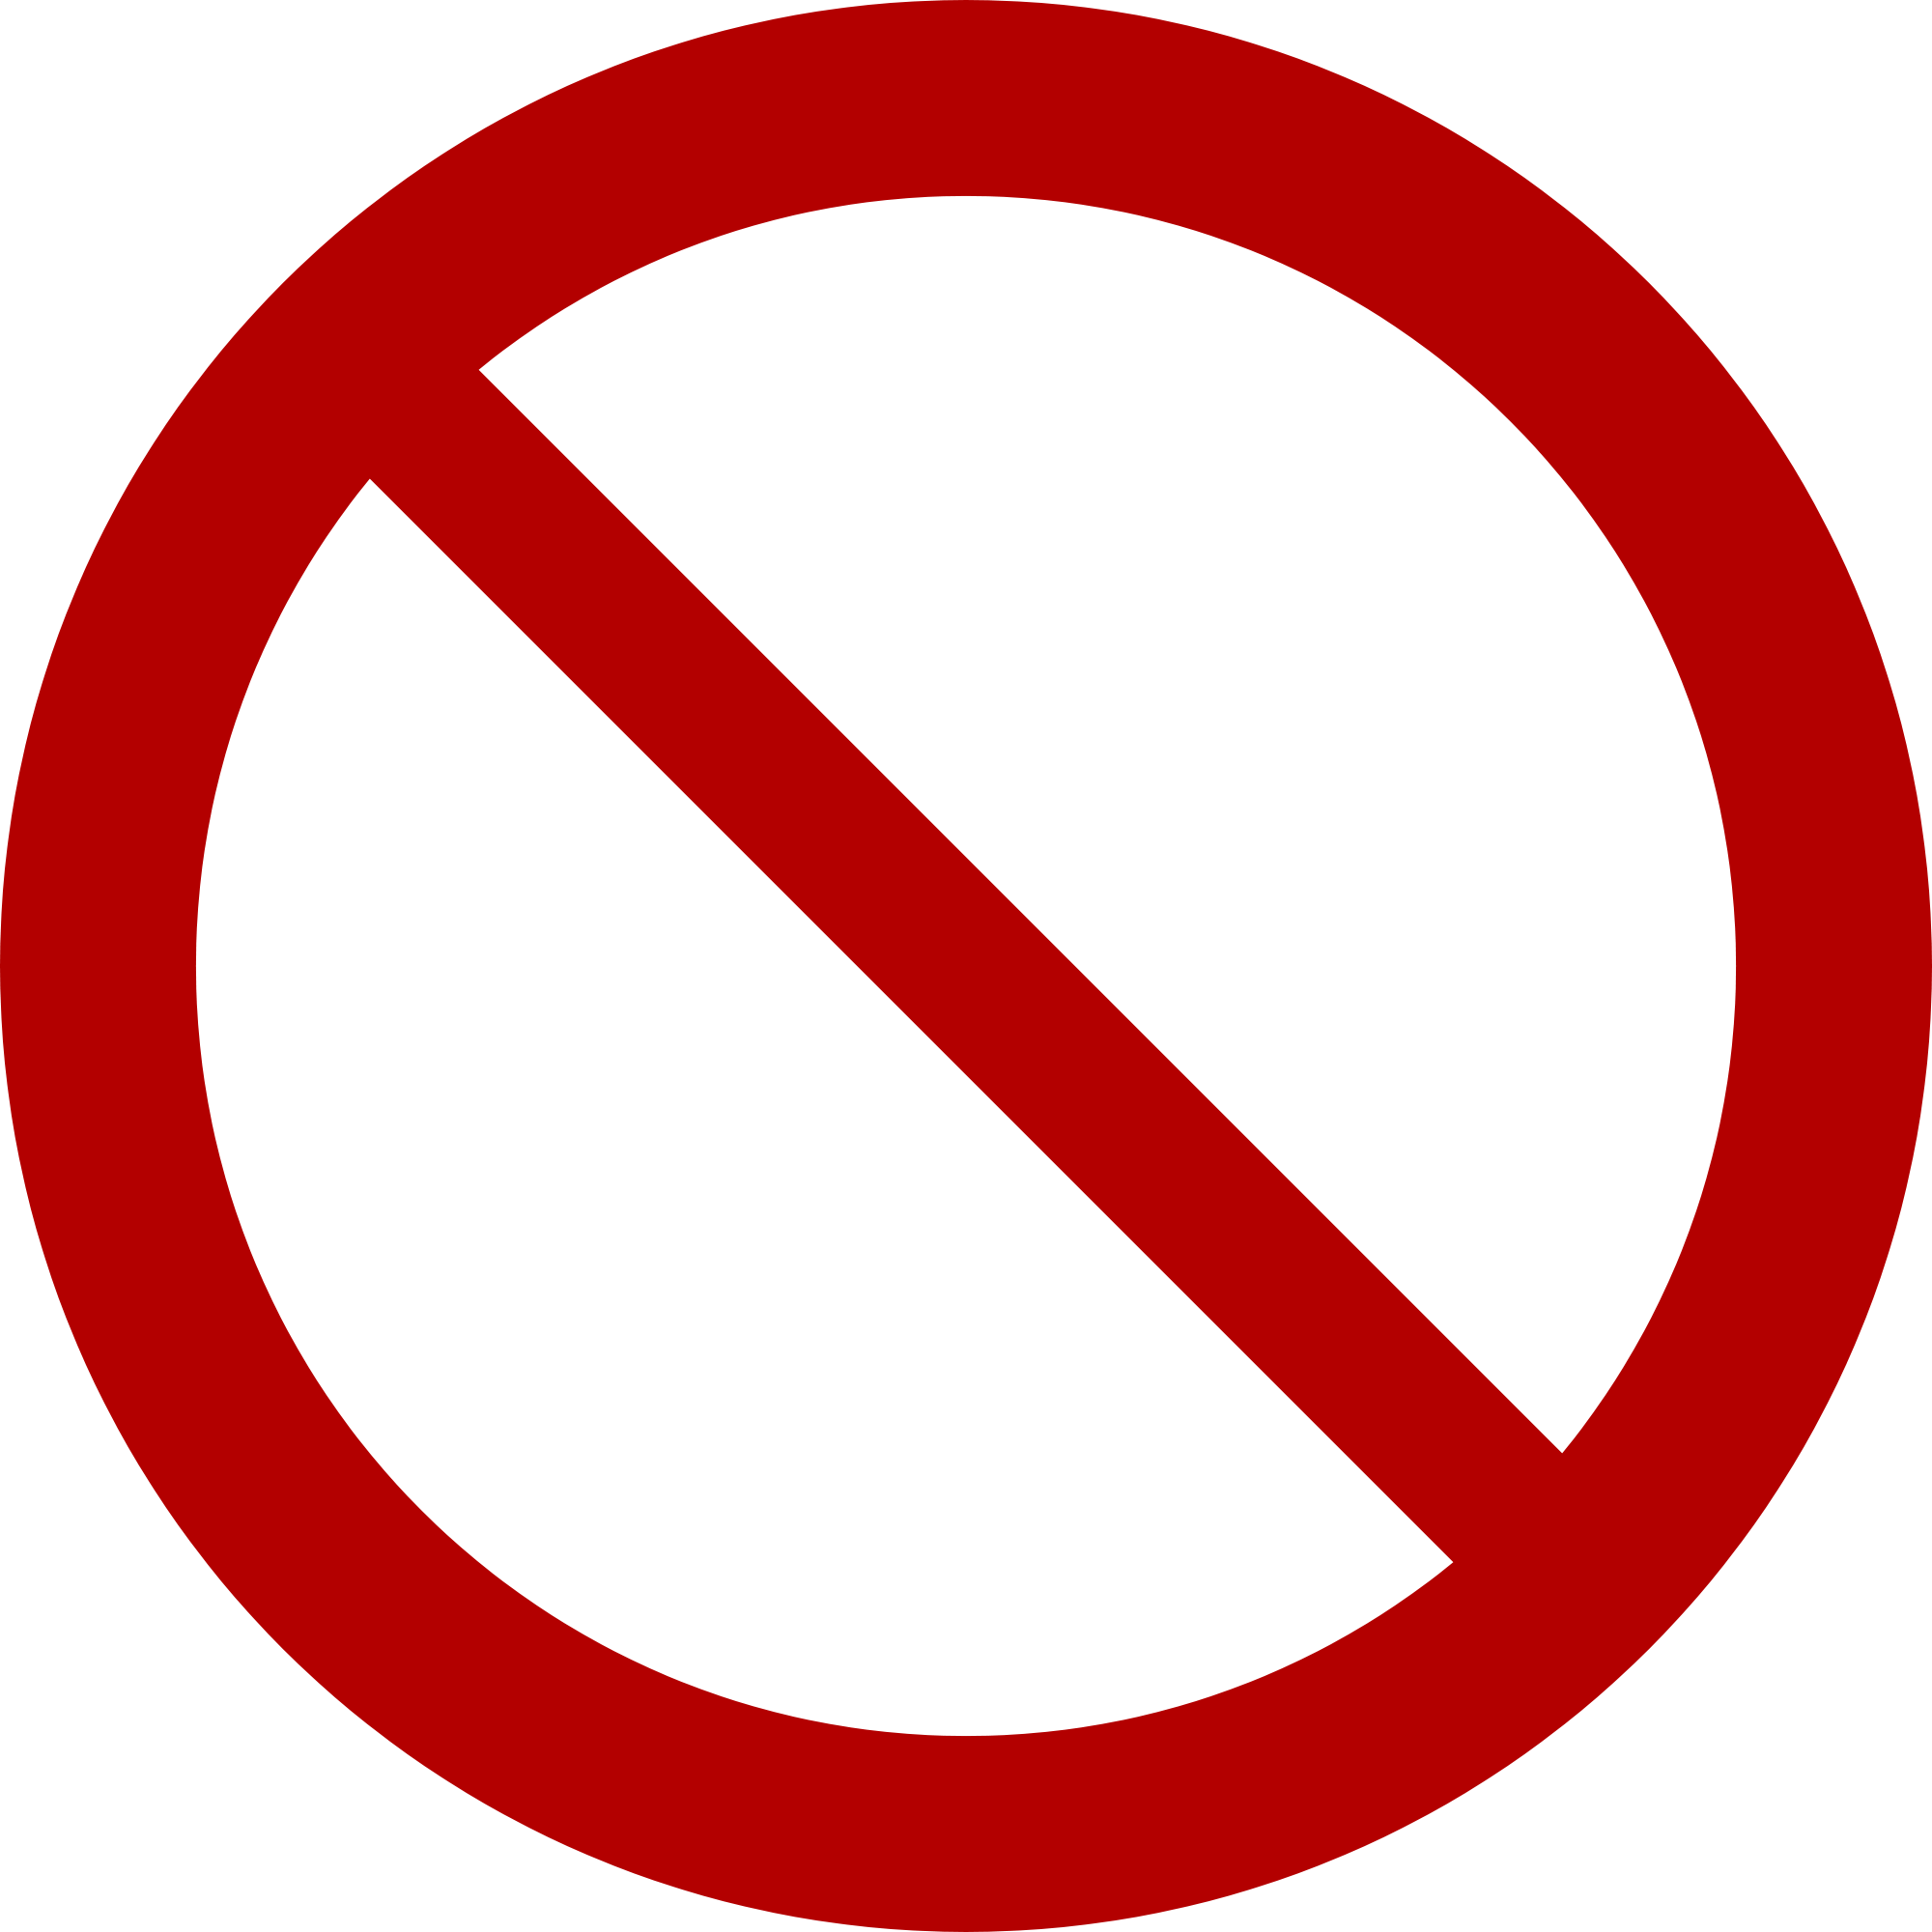 File:ProhibitionSign2.svg